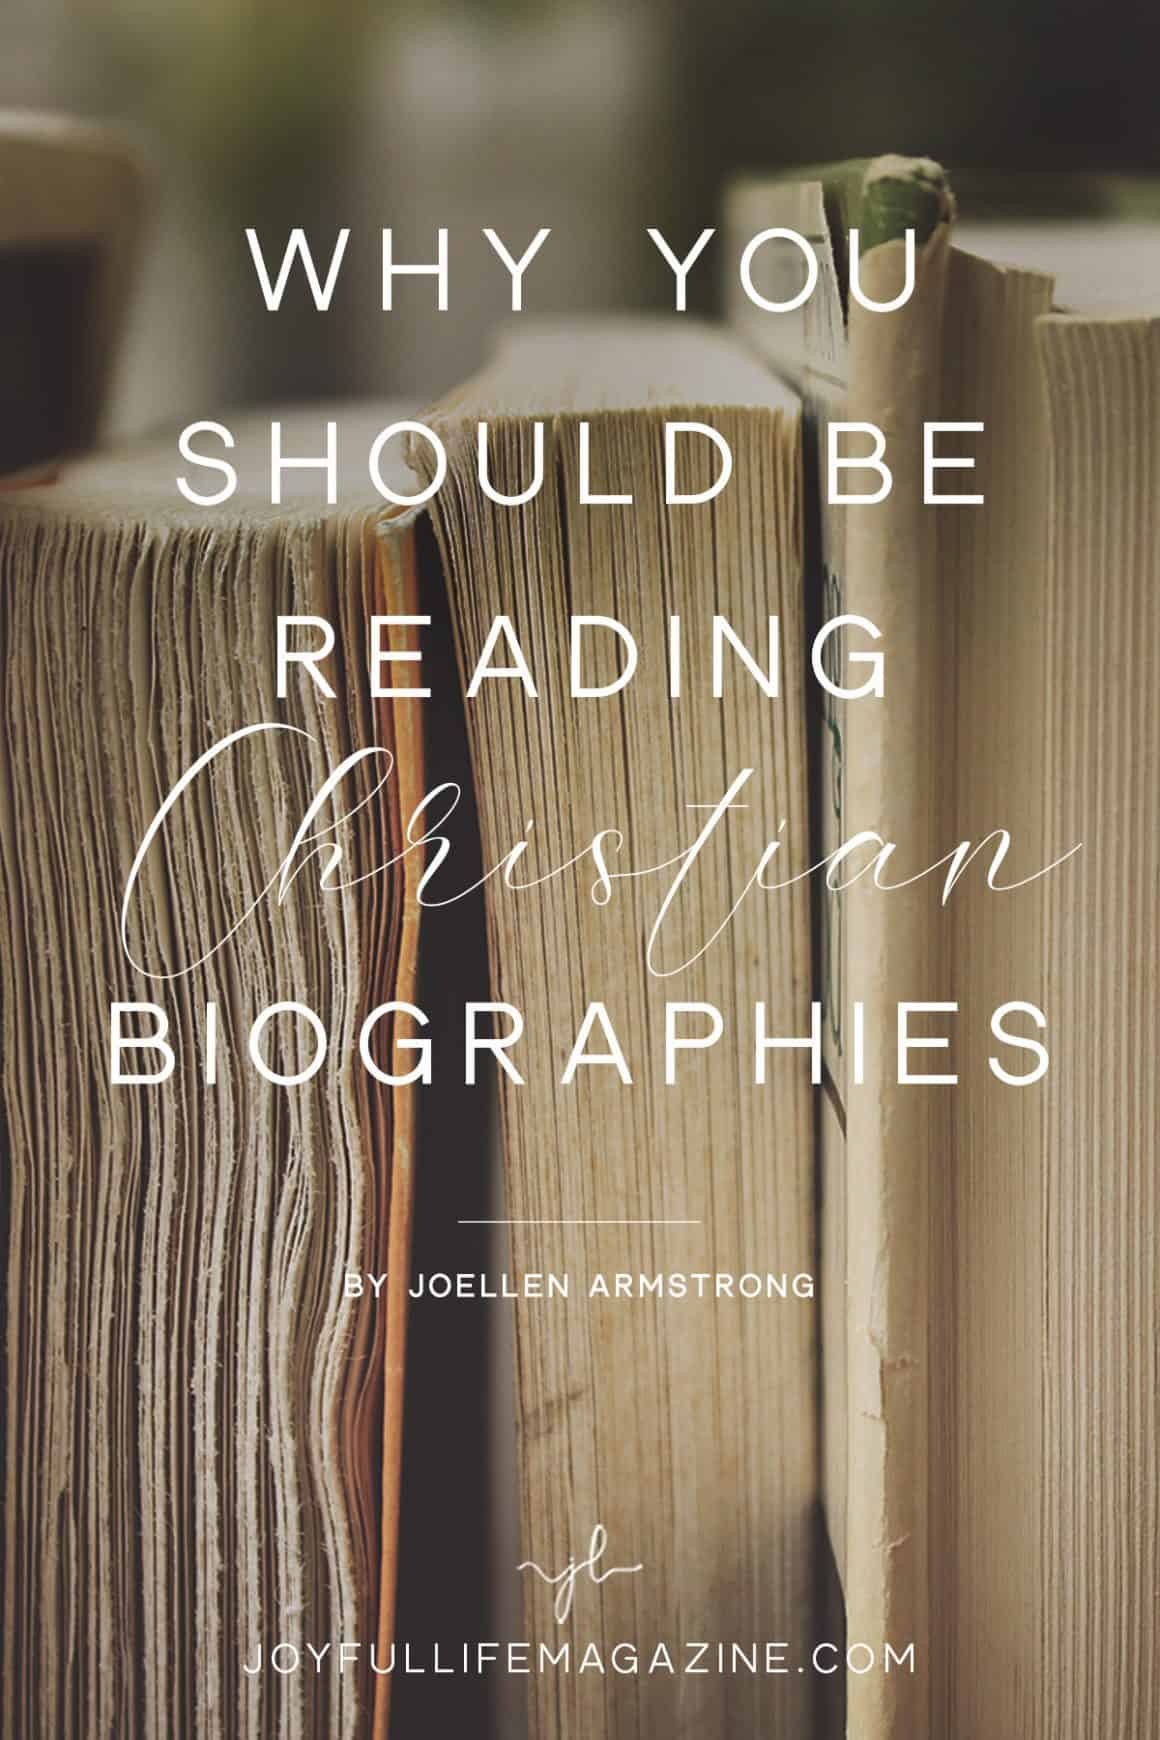 Why You Should Be Reading Christian Biographies | by Joellen Armstrong | The Joyful Life Magazine